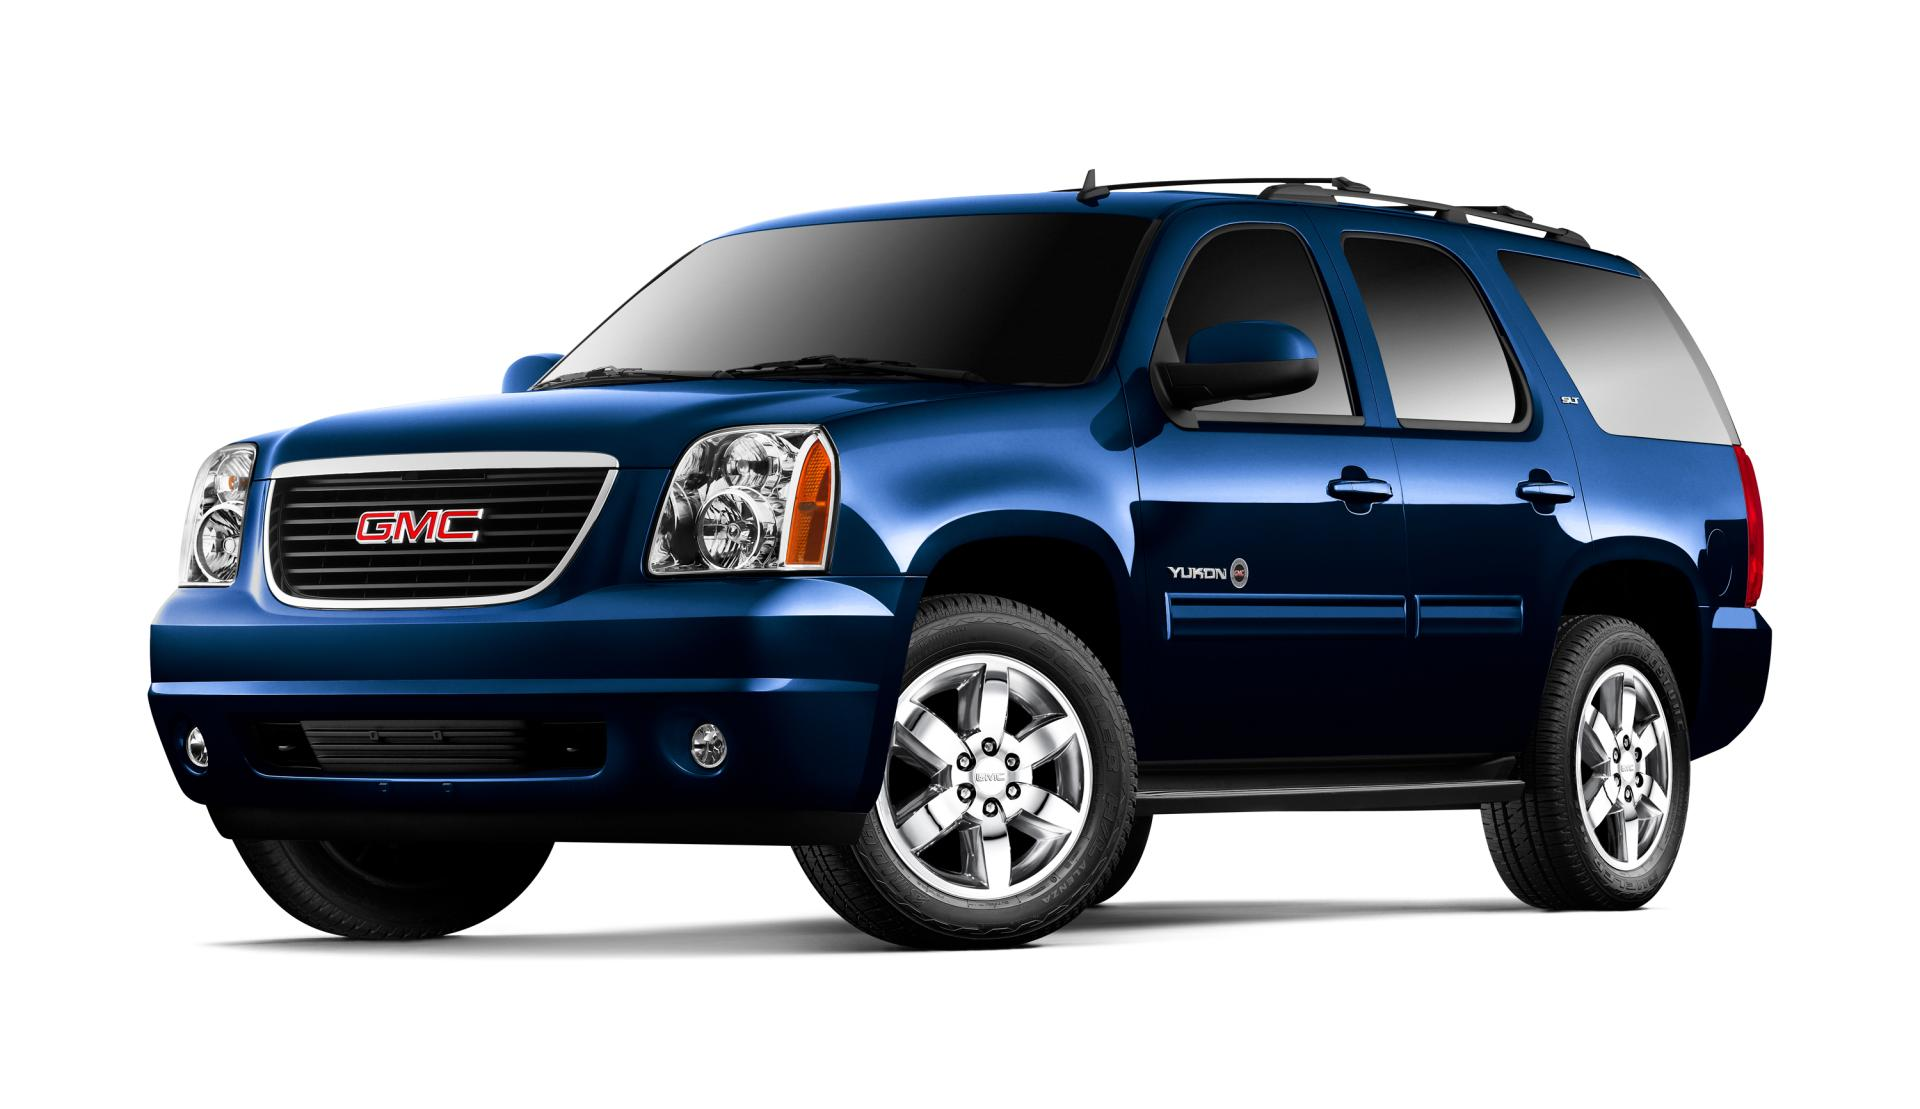 GMC Yukon Heritage Edition pictures and wallpaper